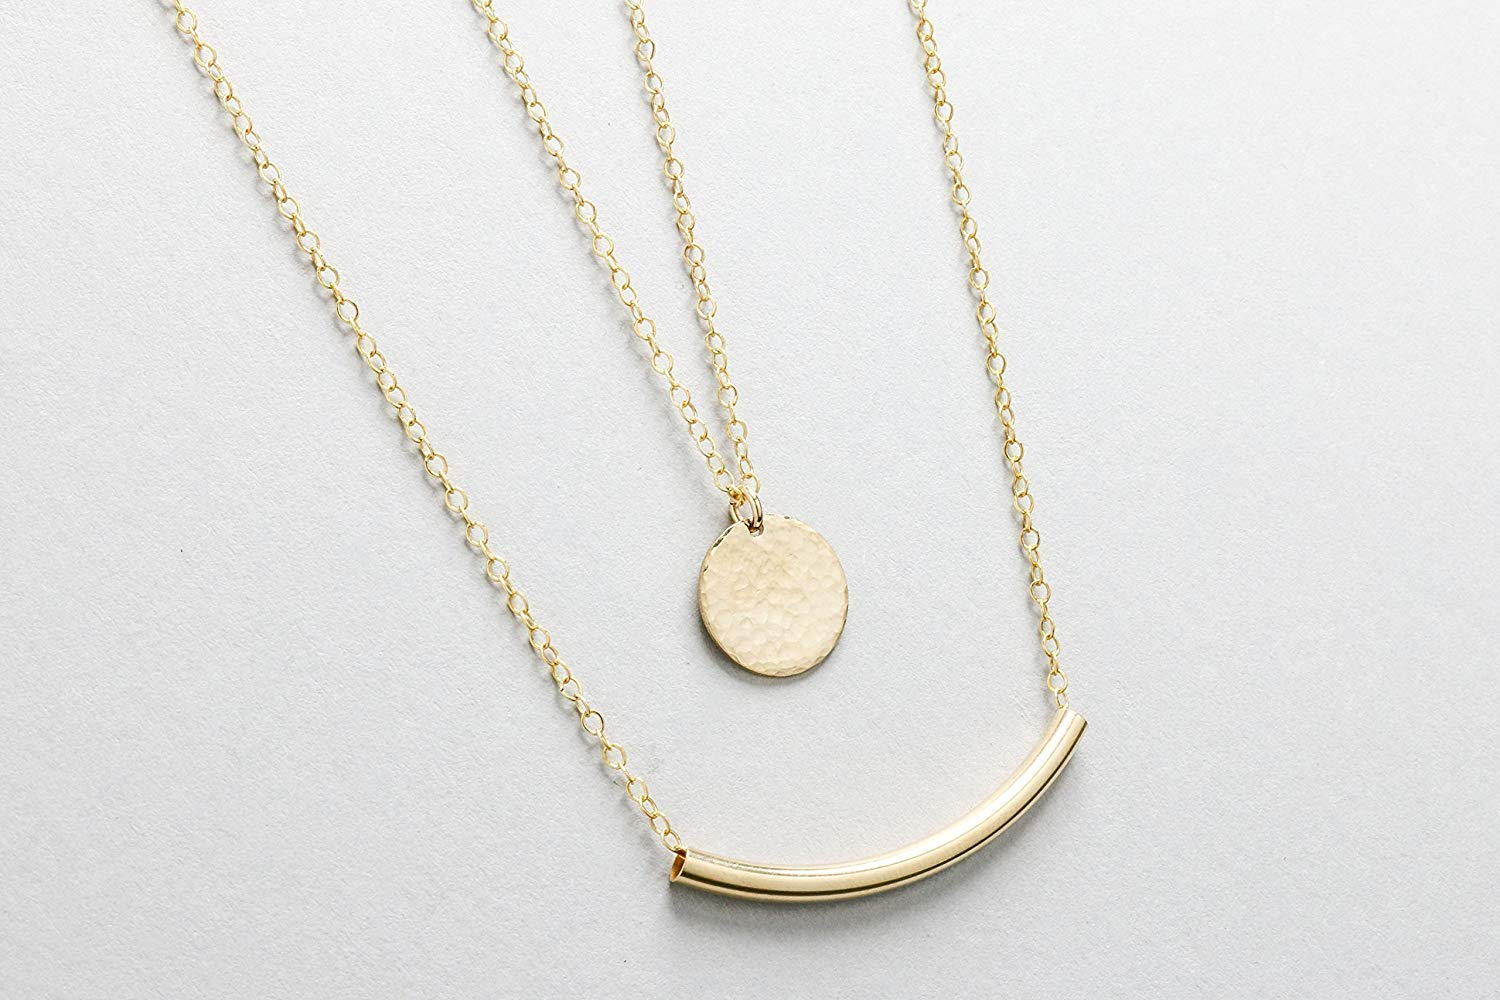 Layered Necklace Set, 14k Gold Filled Necklace Set of 2, Disc Necklace with Curved Tube Necklace, Layered and Long Gold Jewelry Set